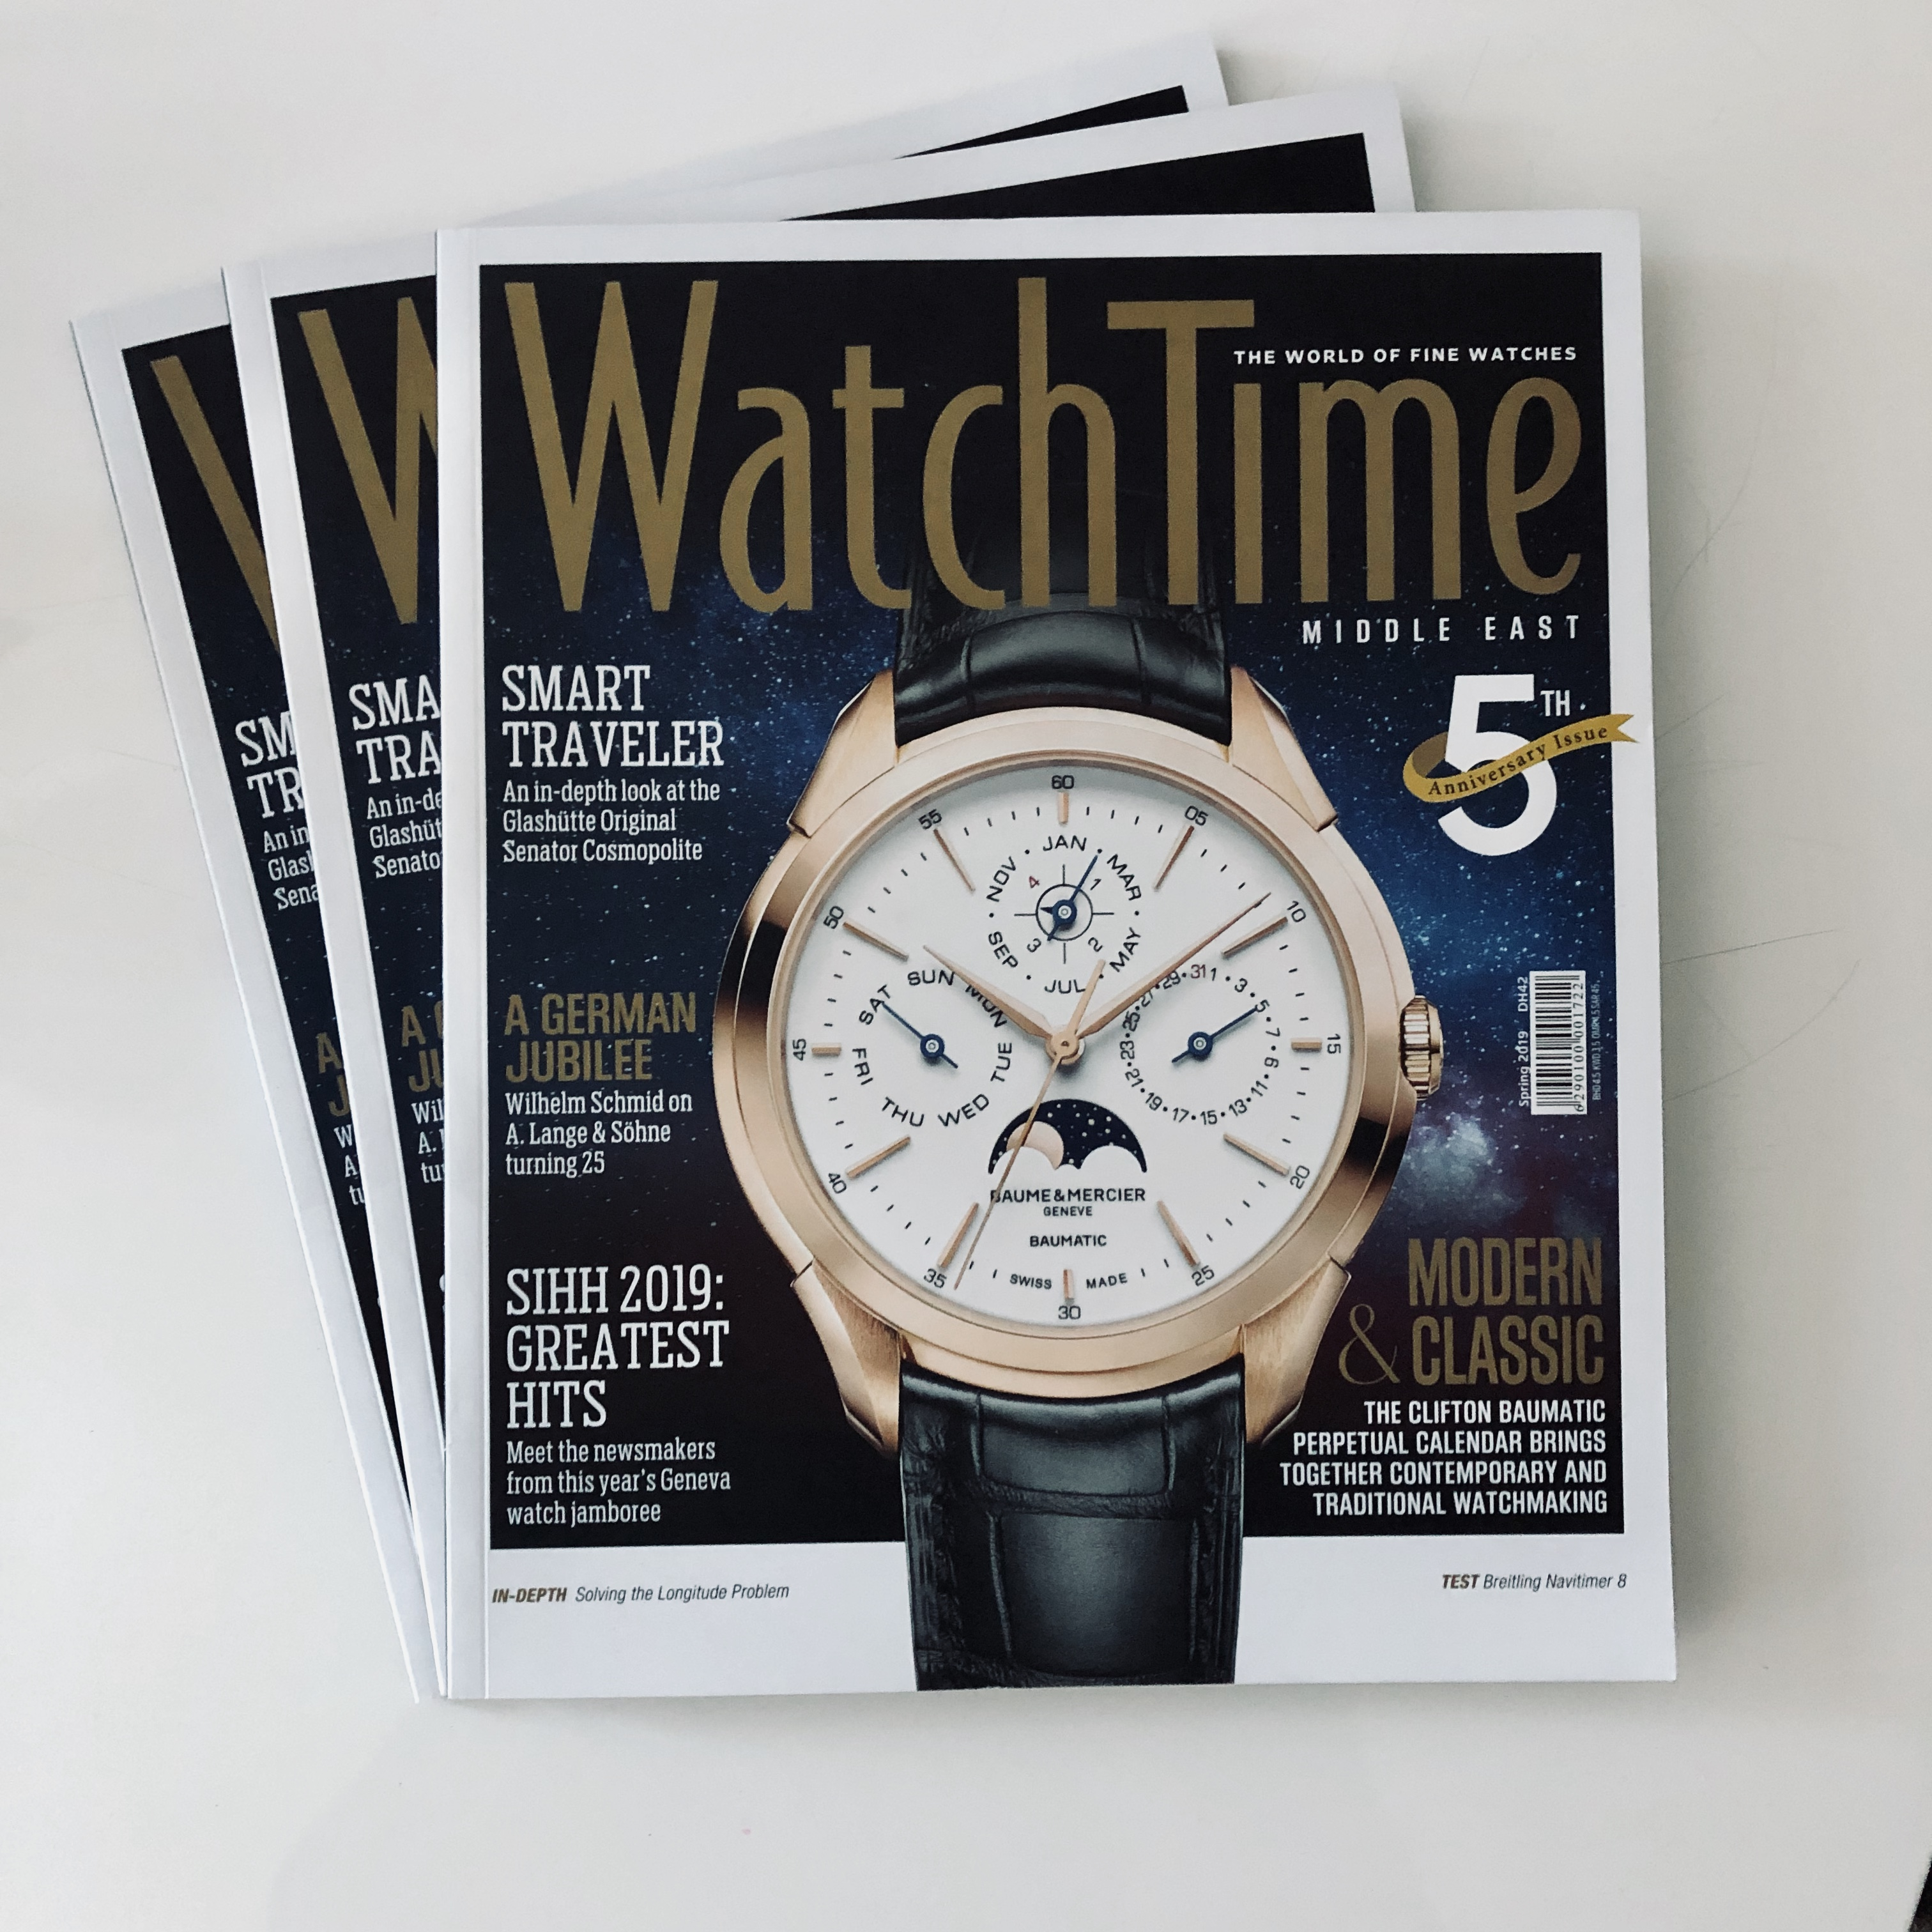 Middle East edition of Watch Time magazine